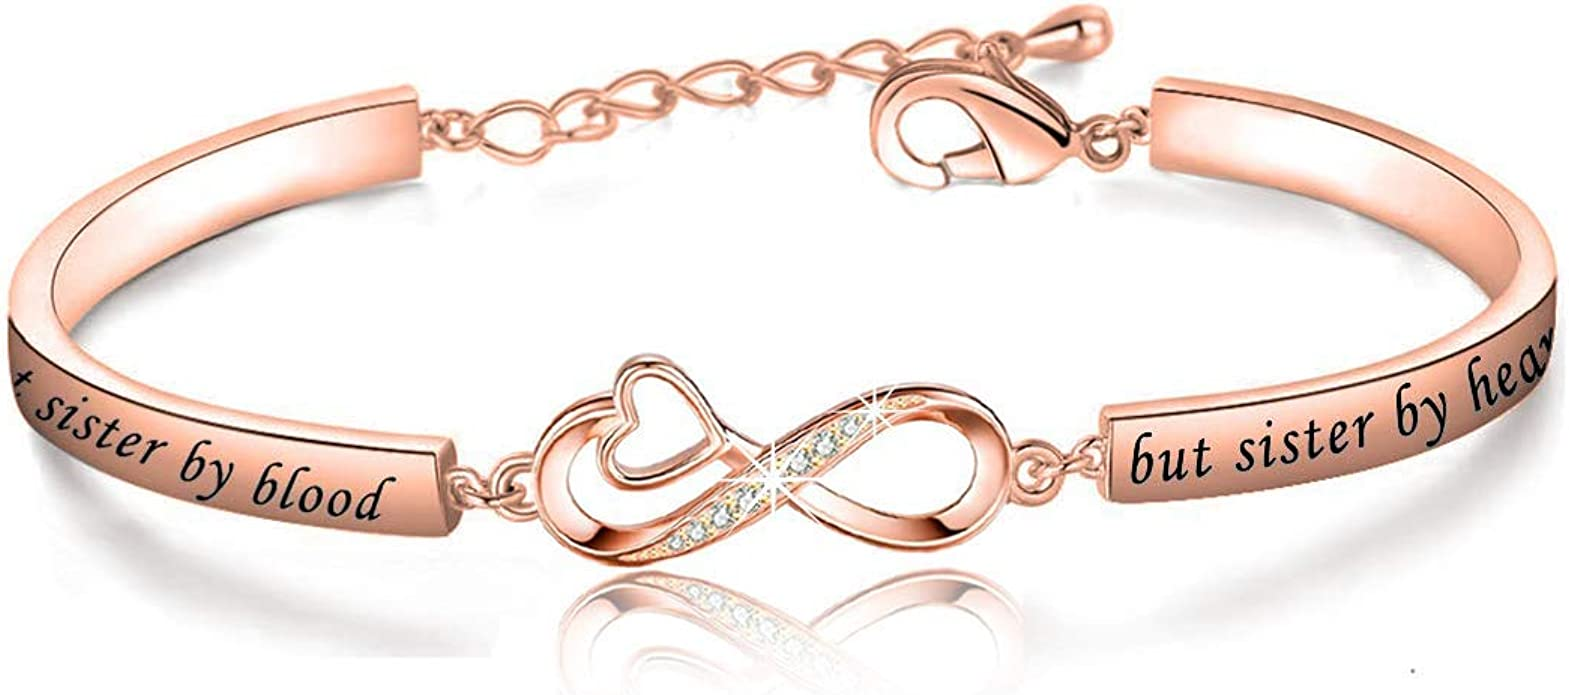 Not Sister by Blood But Sister by Heart Gift Best Friend Jewelry for Unbiological Soul Sister BFF Friendship Bracelets for Women Girls